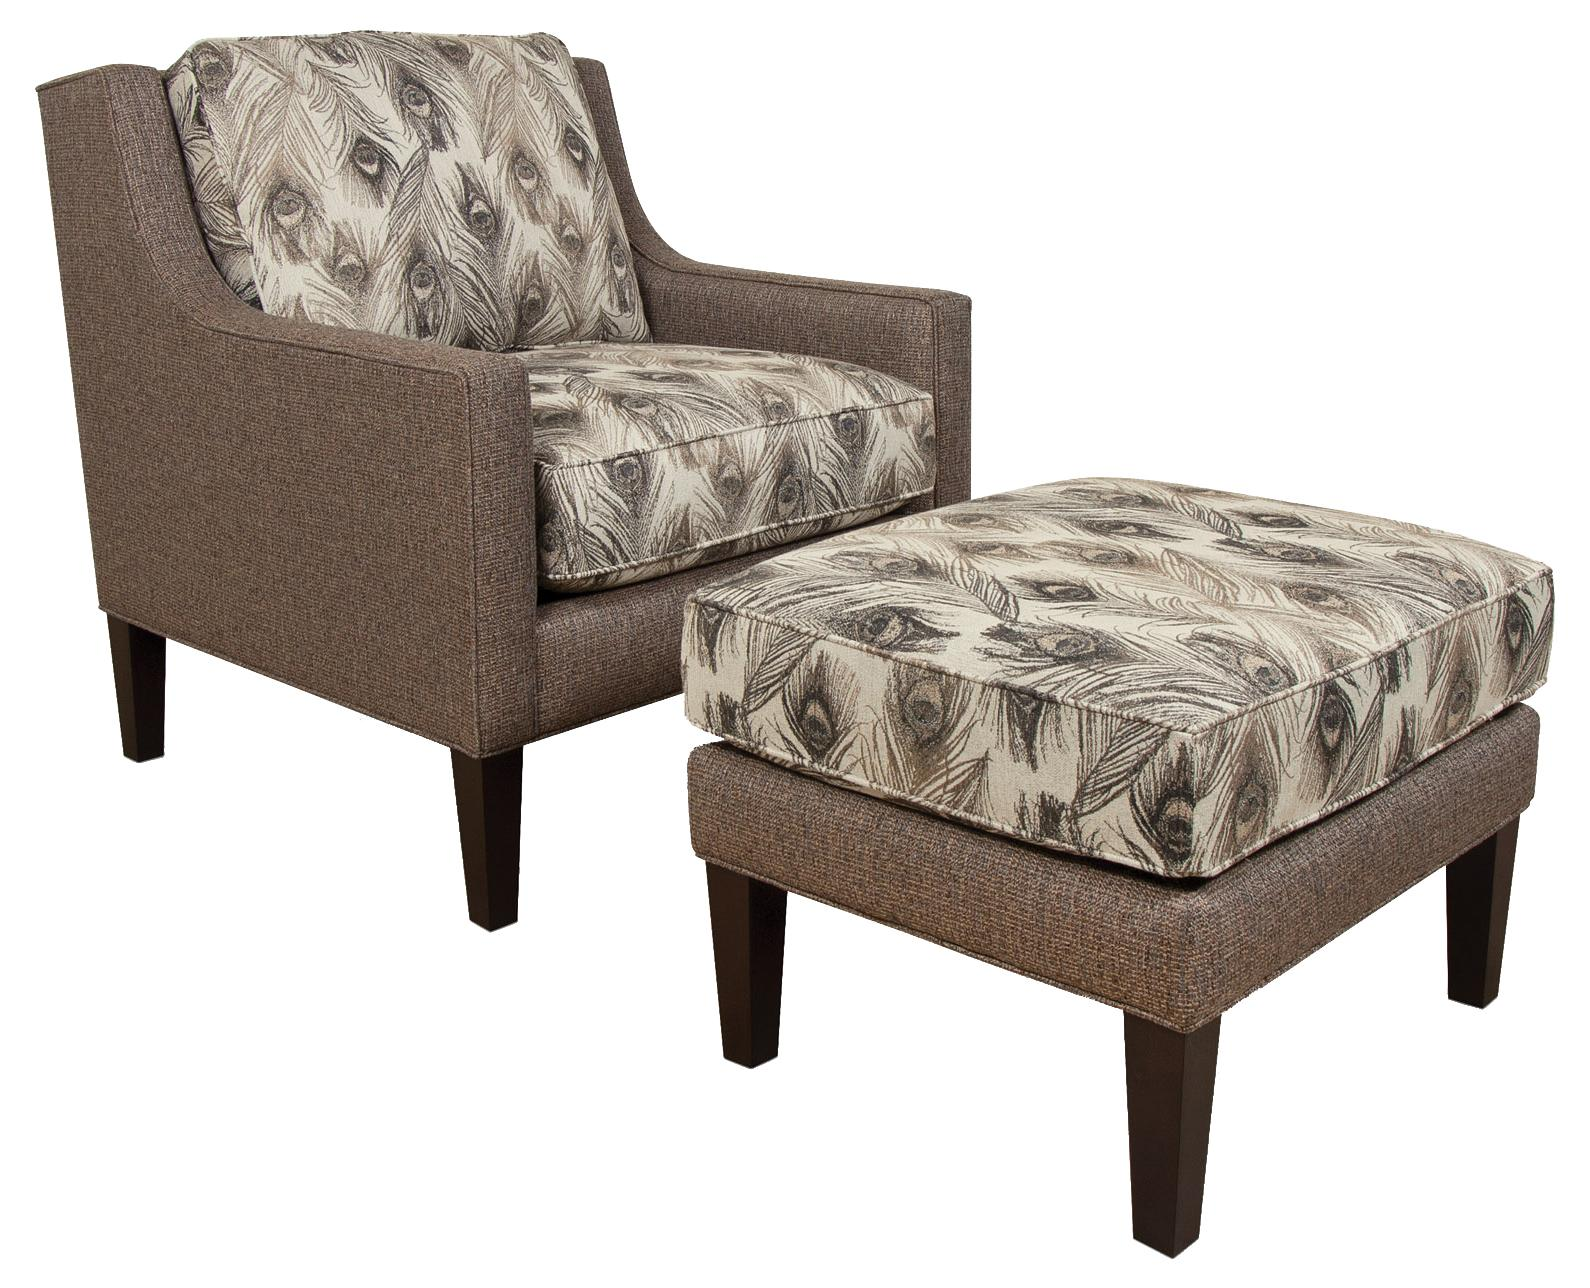 Wonderful image of  Ottoman with Rectangle Shape Charleston Furniture Chair & Ottoman with #31261E color and 1590x1288 pixels